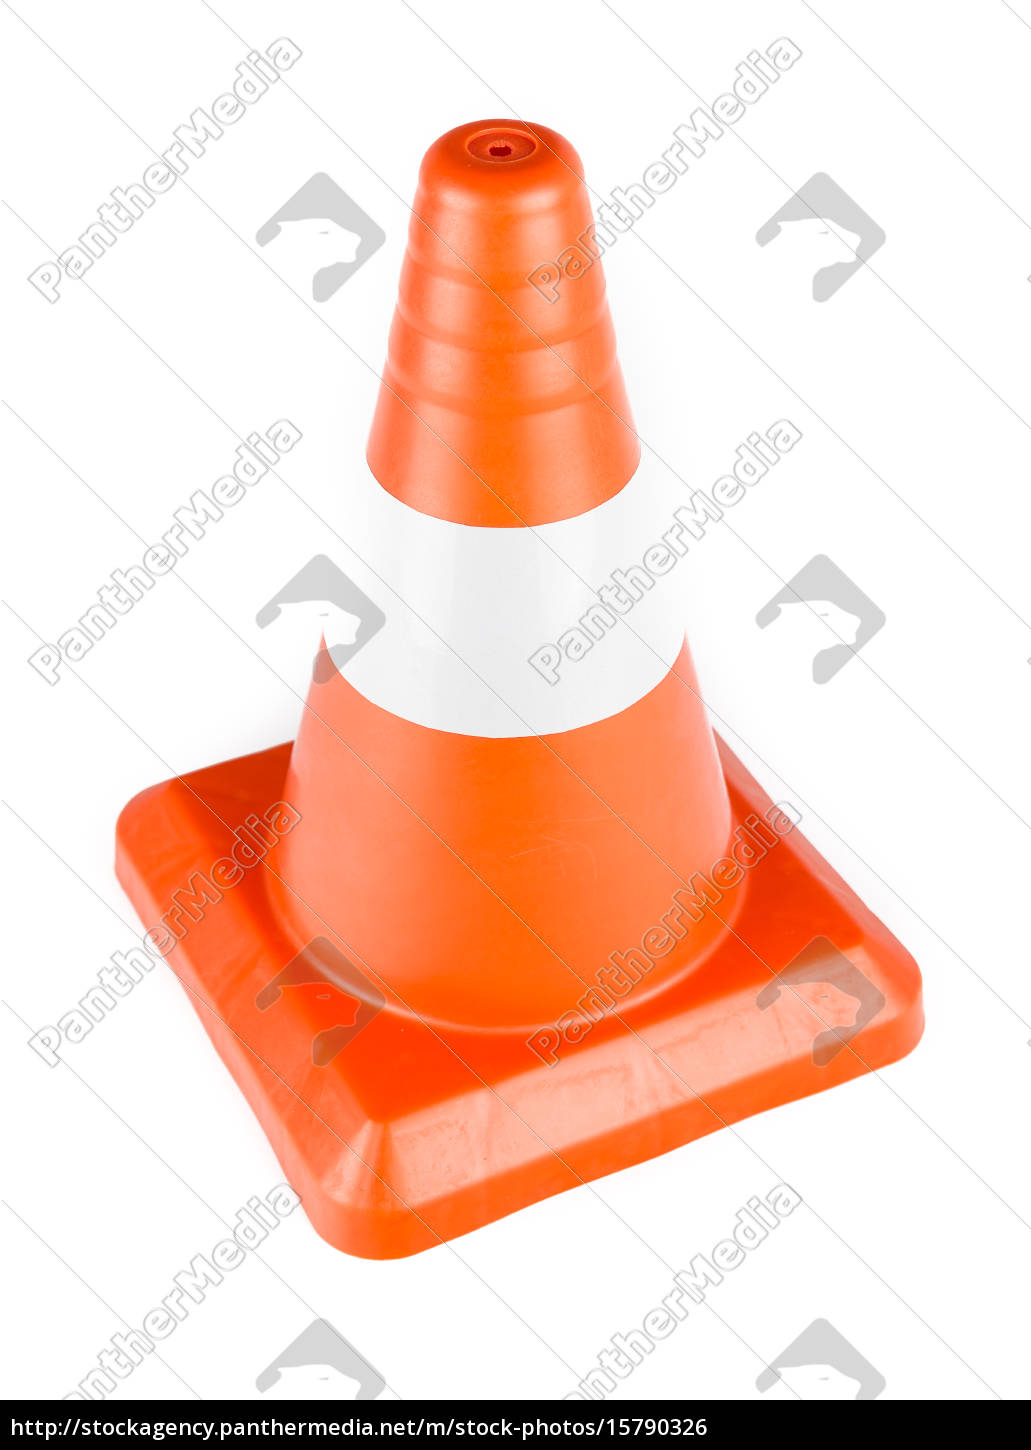 red, reflective, traffic, cone - 15790326